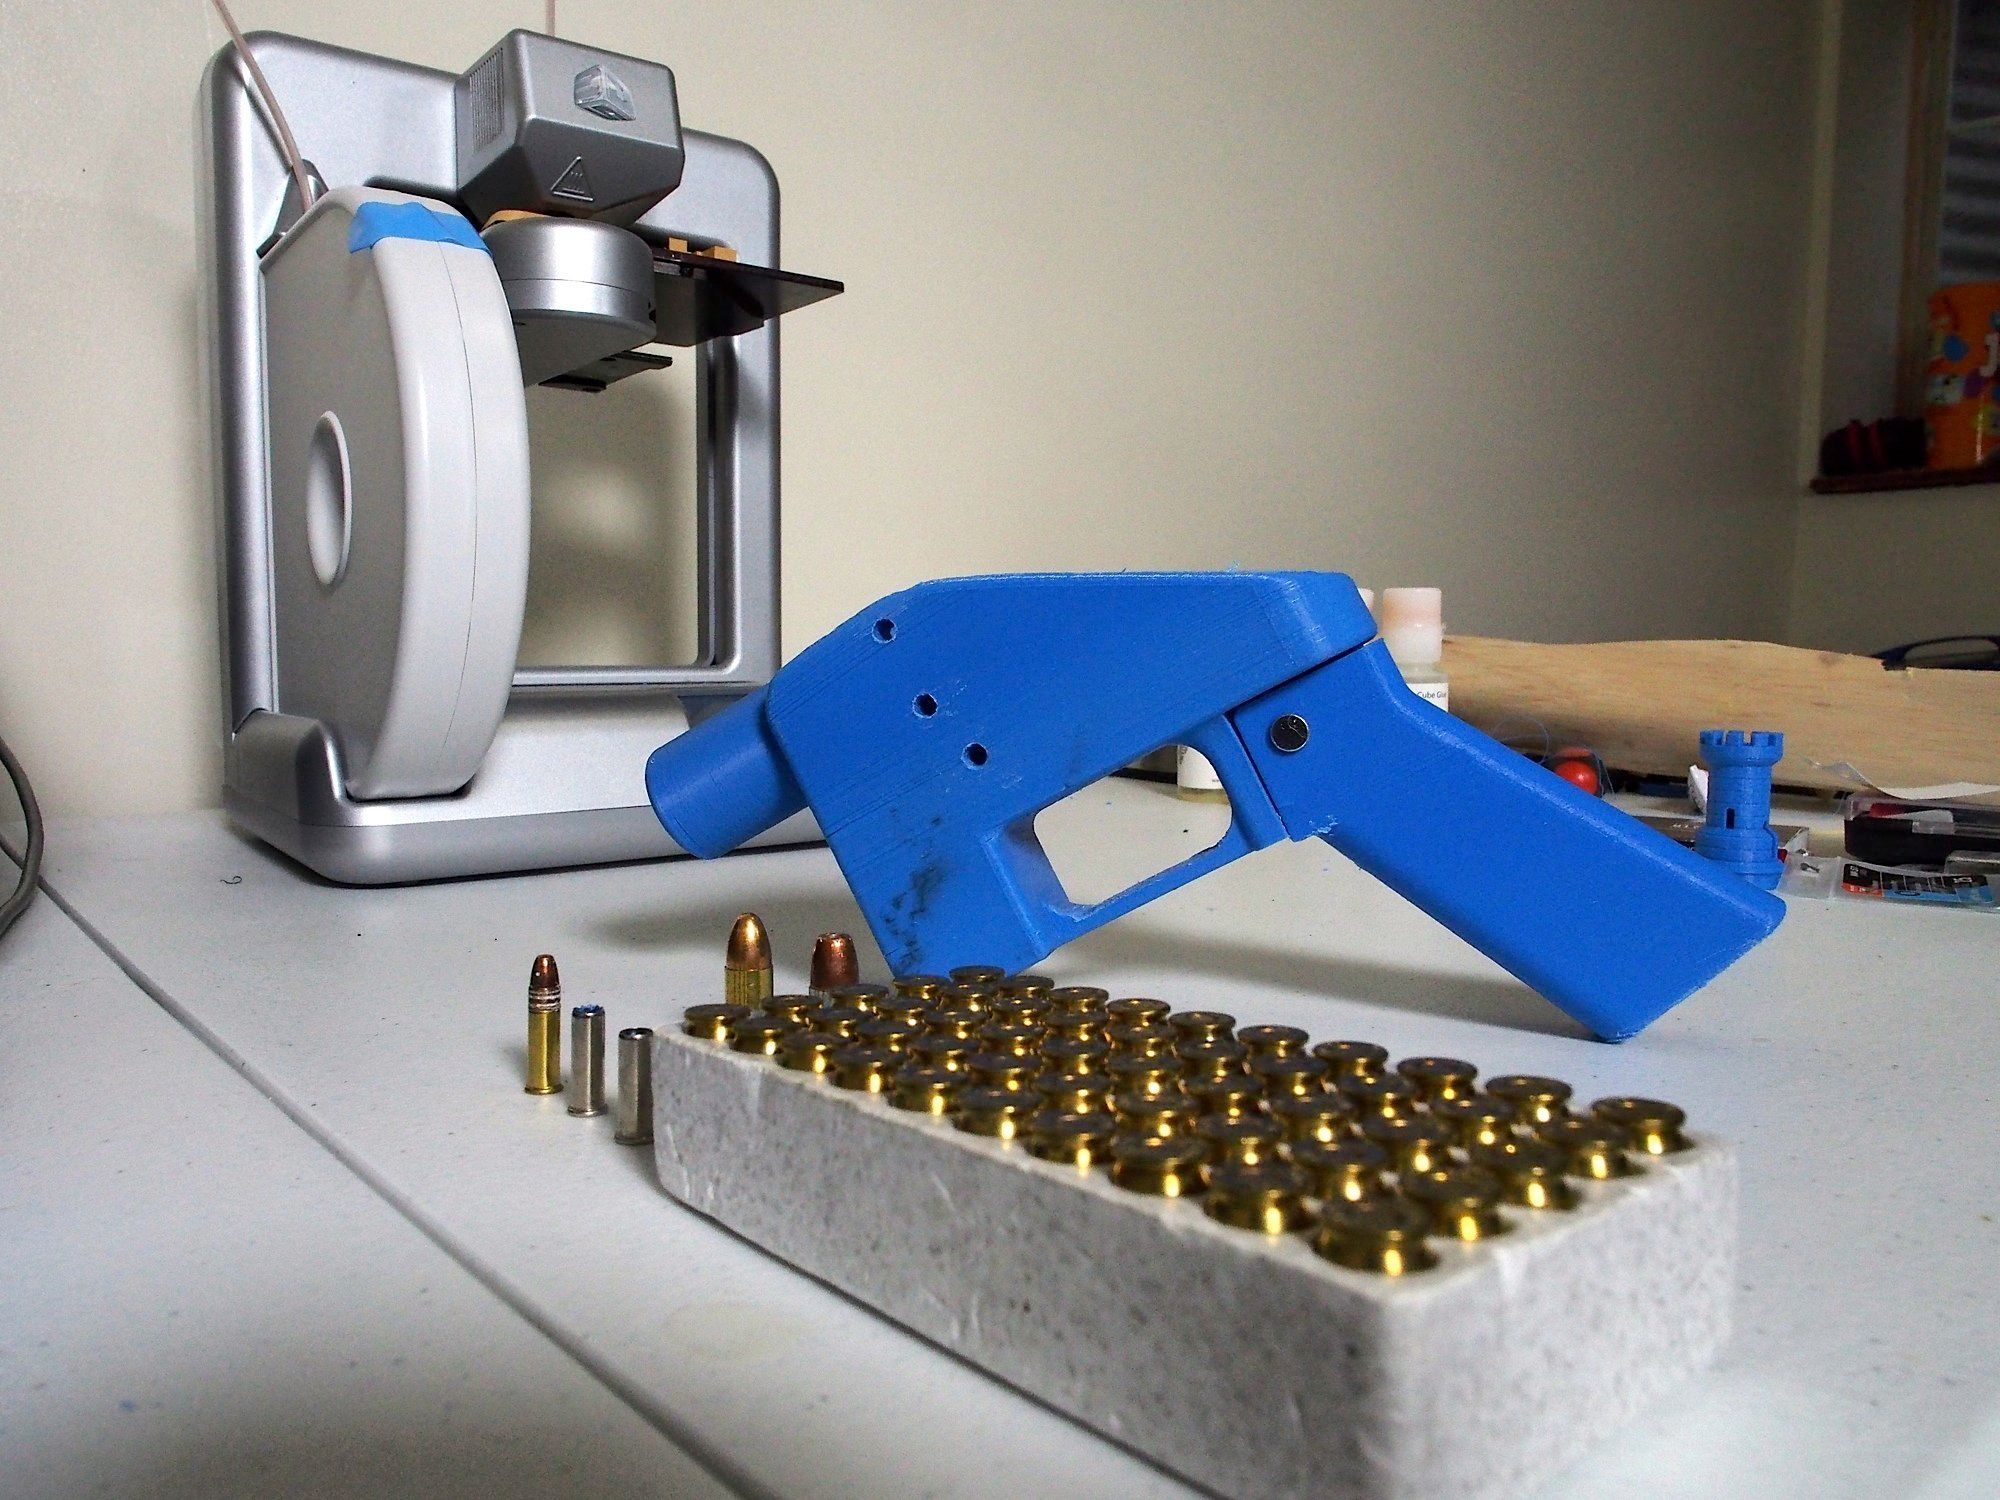 The US Will Allow 3D-Printed Gun Blueprints Next